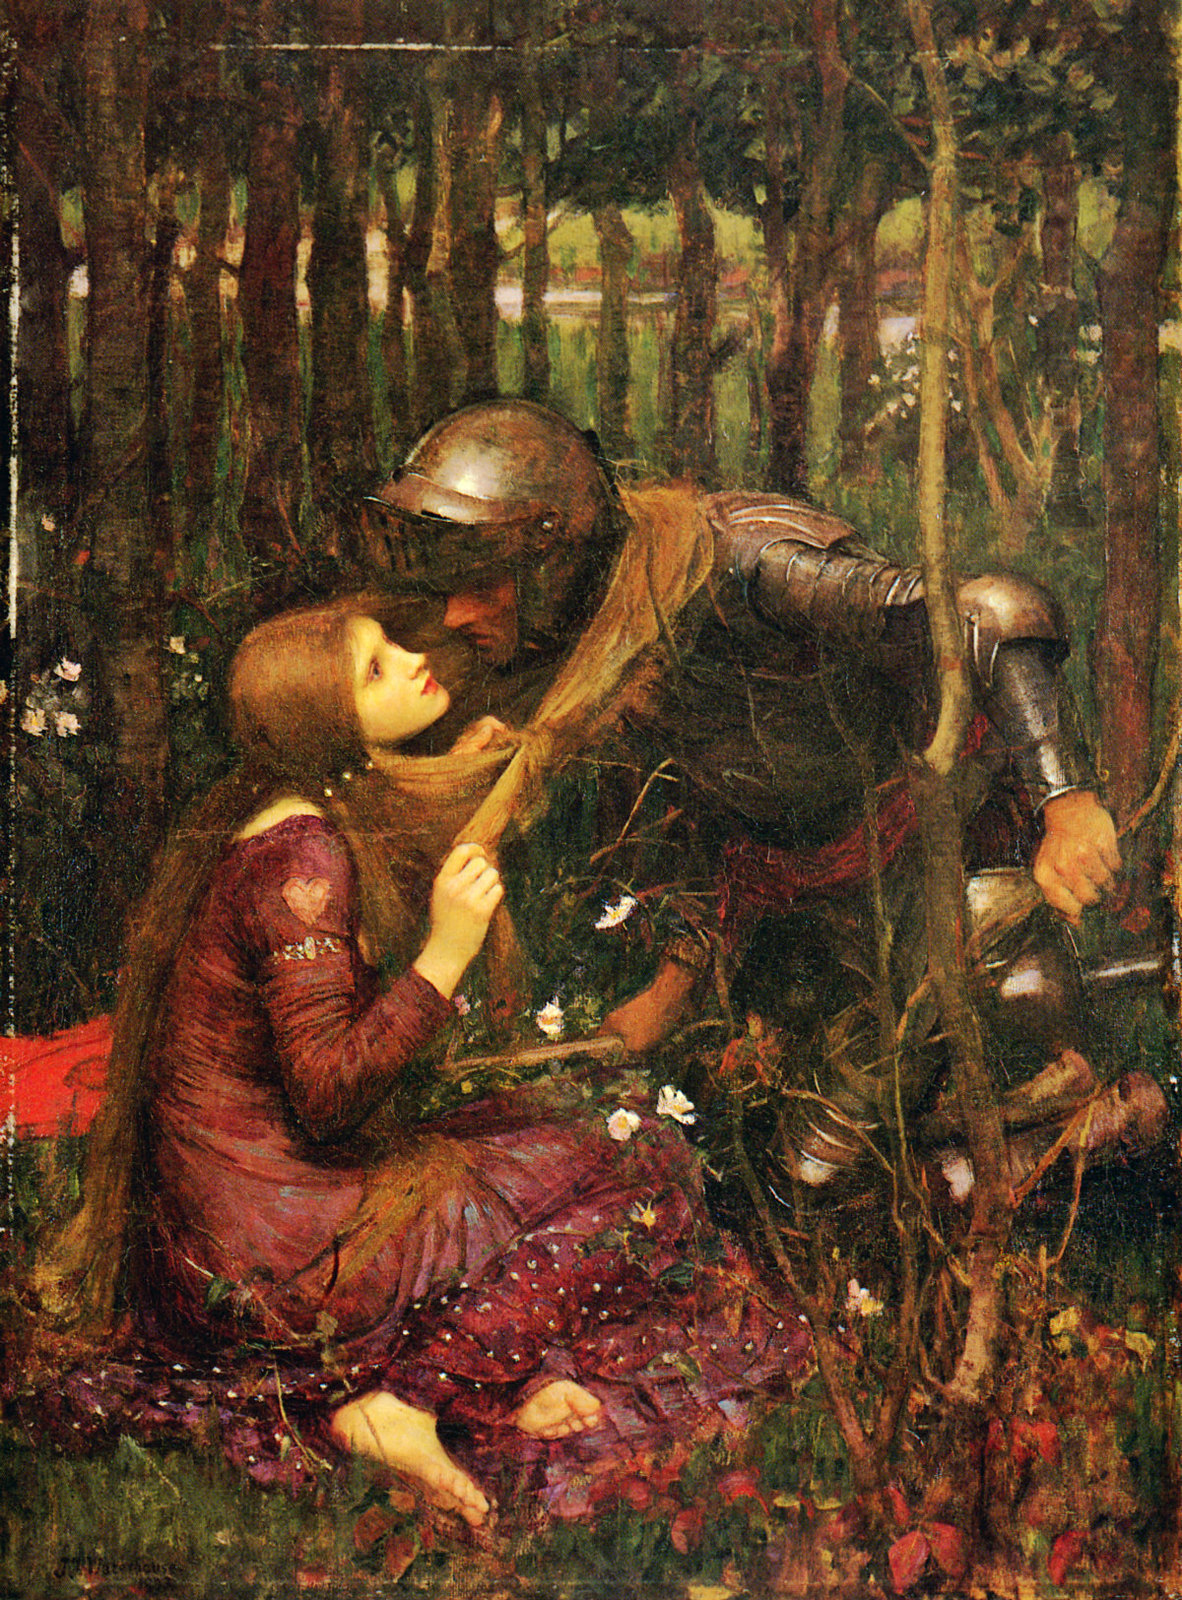 La Belle Dame sans Merci by John William Waterhouse, 1893.